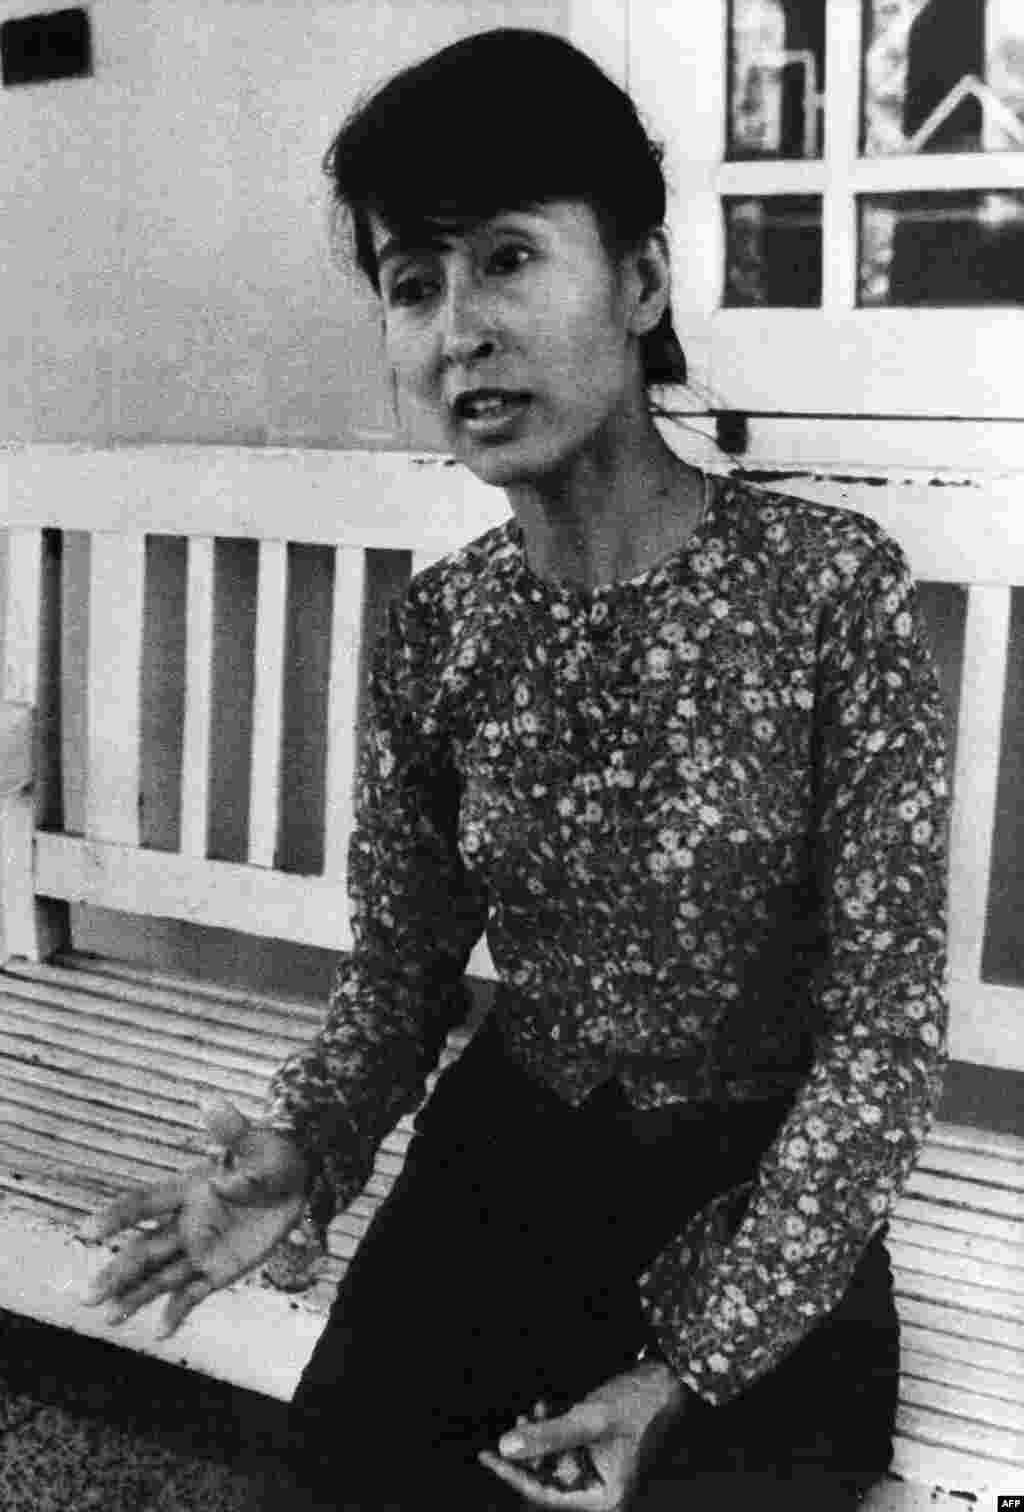 Suu Kyi at her residence in Yangon on February 9, 1989.